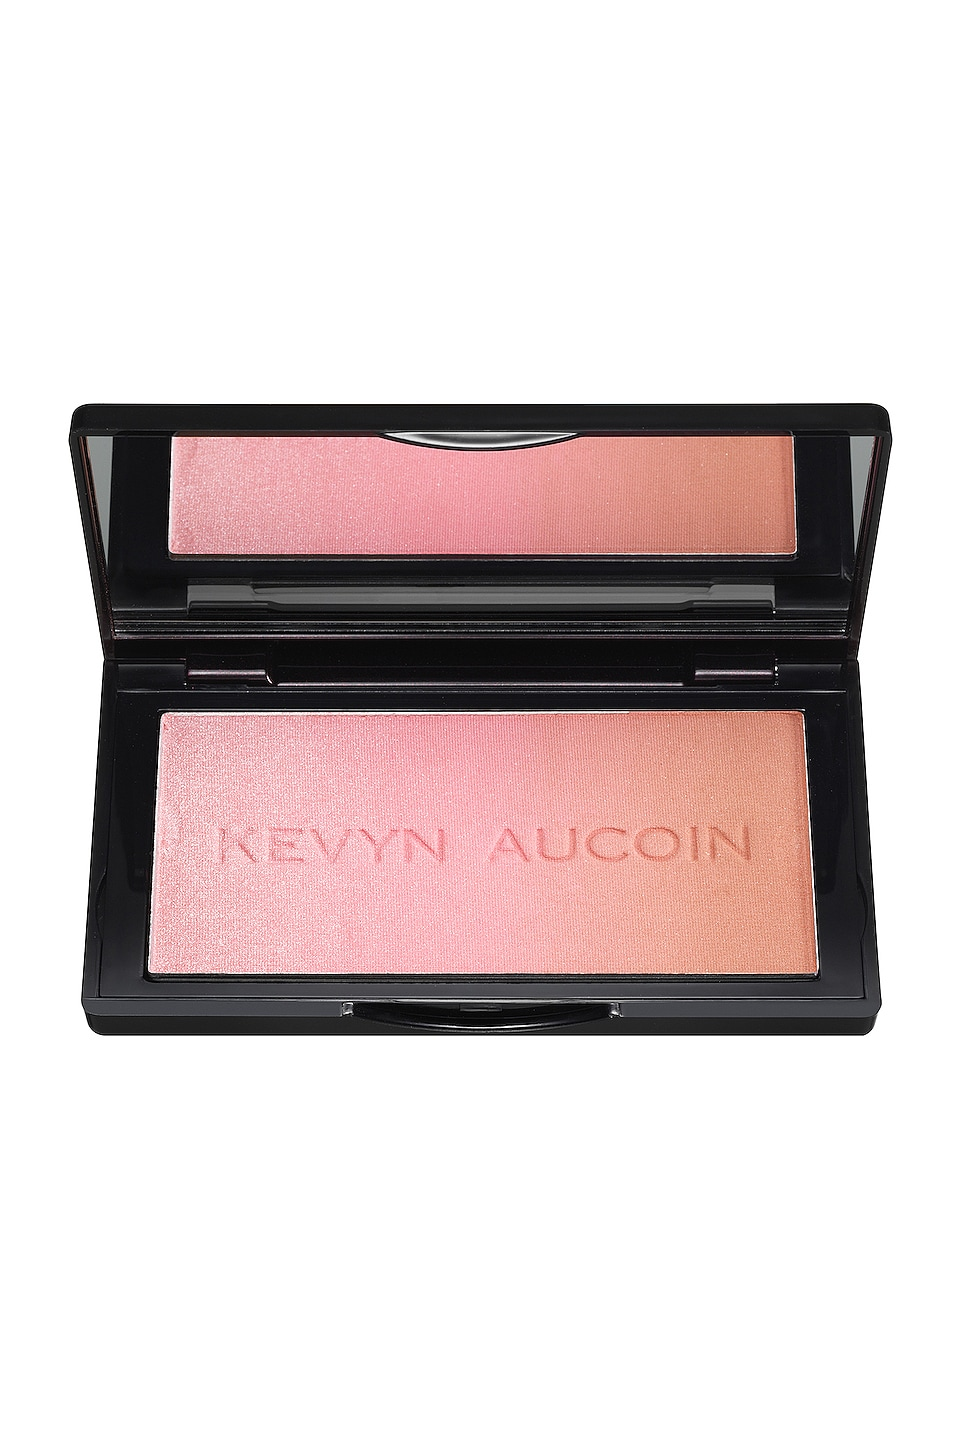 Kevyn Aucoin The Neo-Blush in Pink Sand